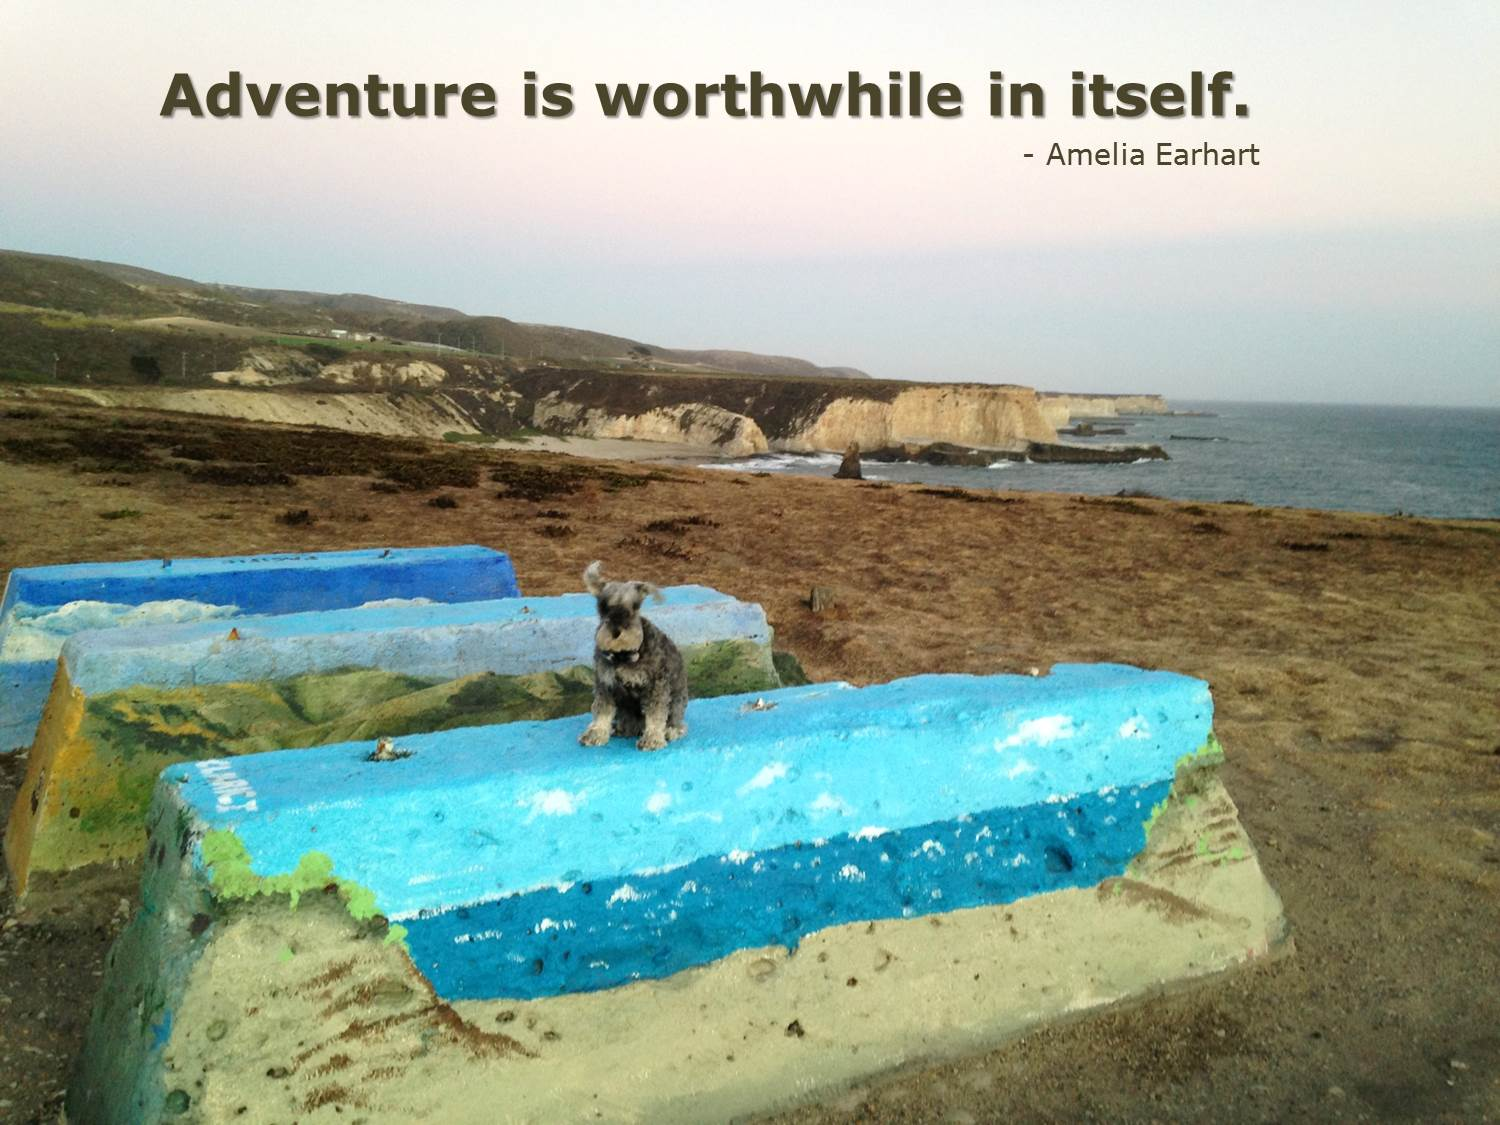 travel in your own backyard